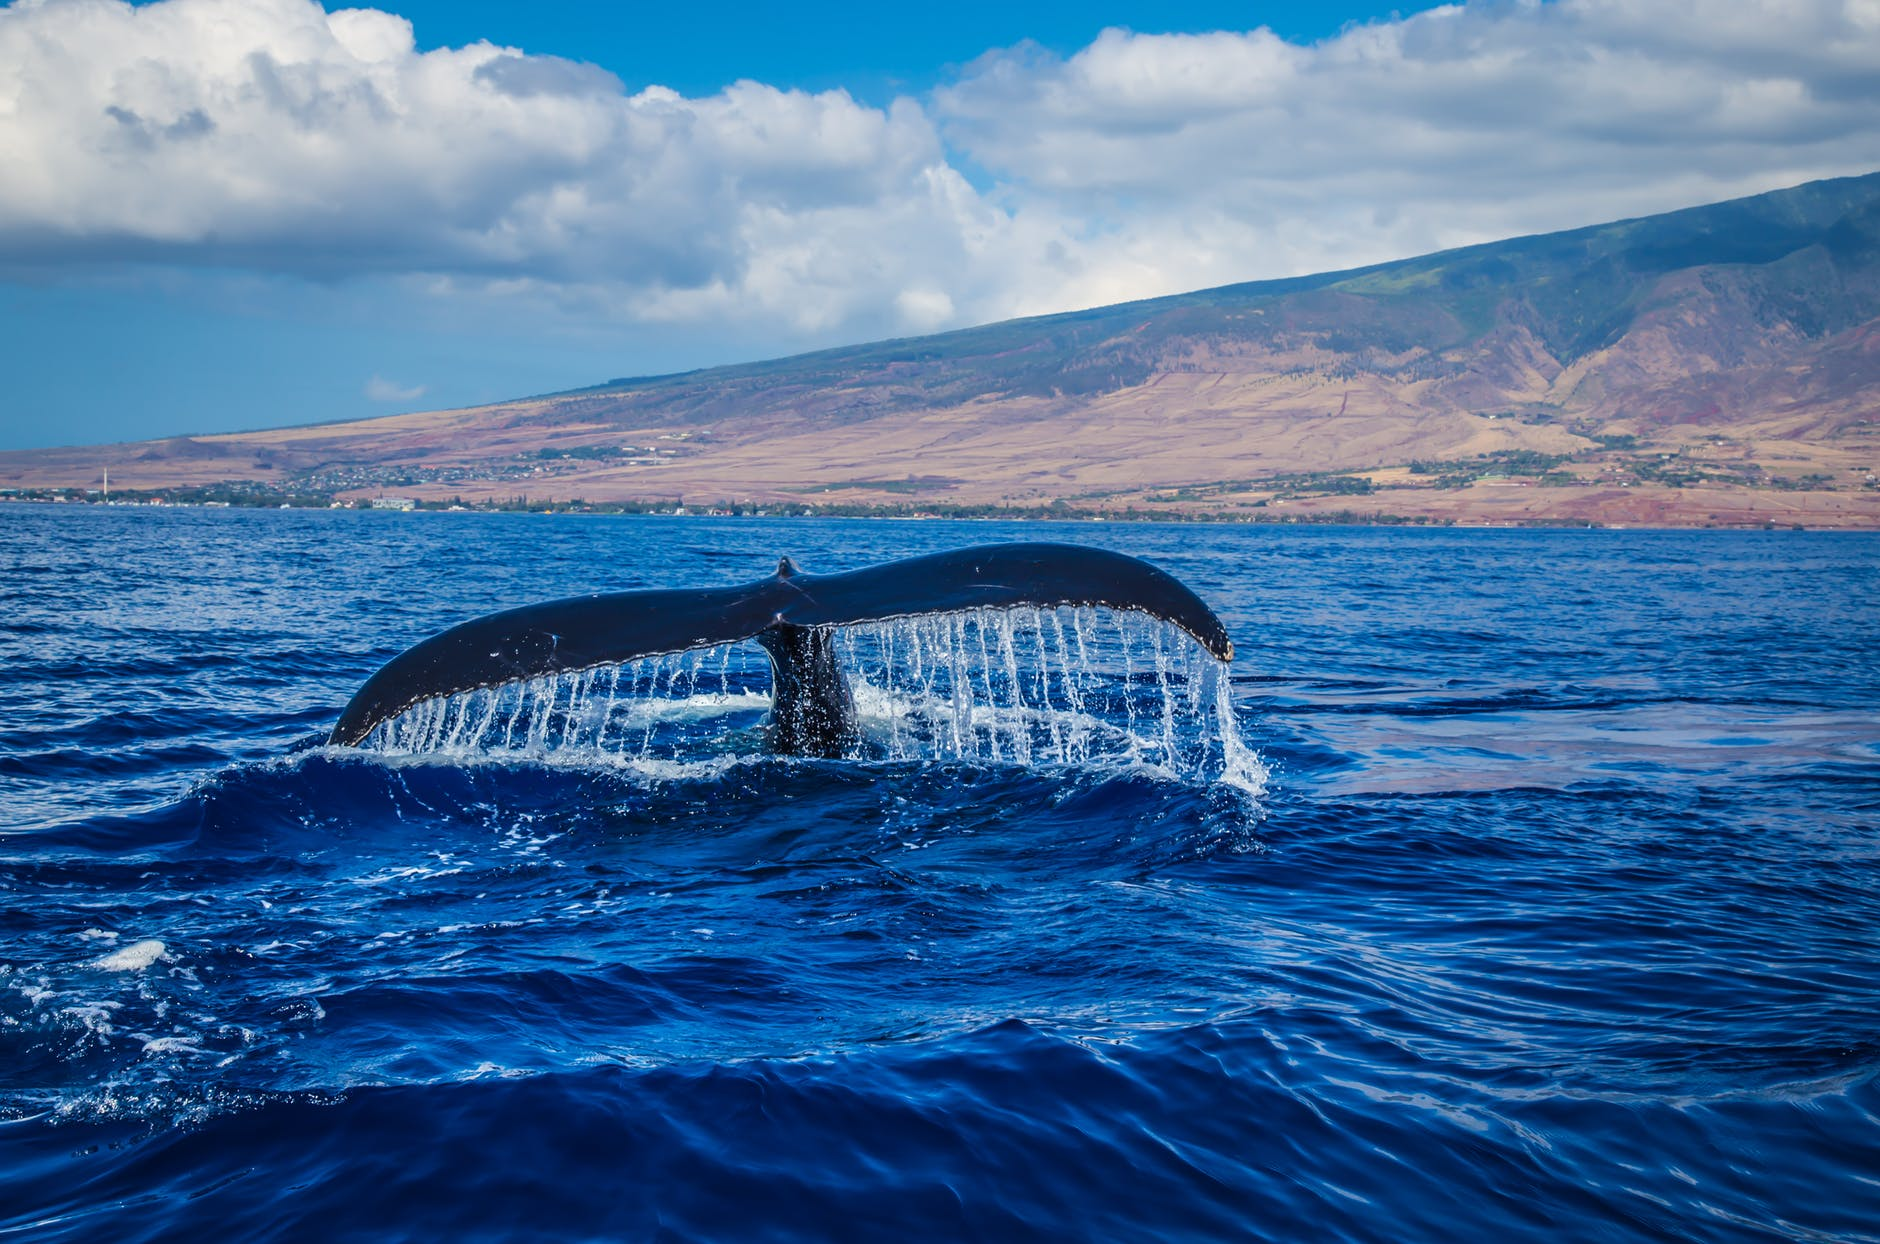 photography of whale tail in body of water